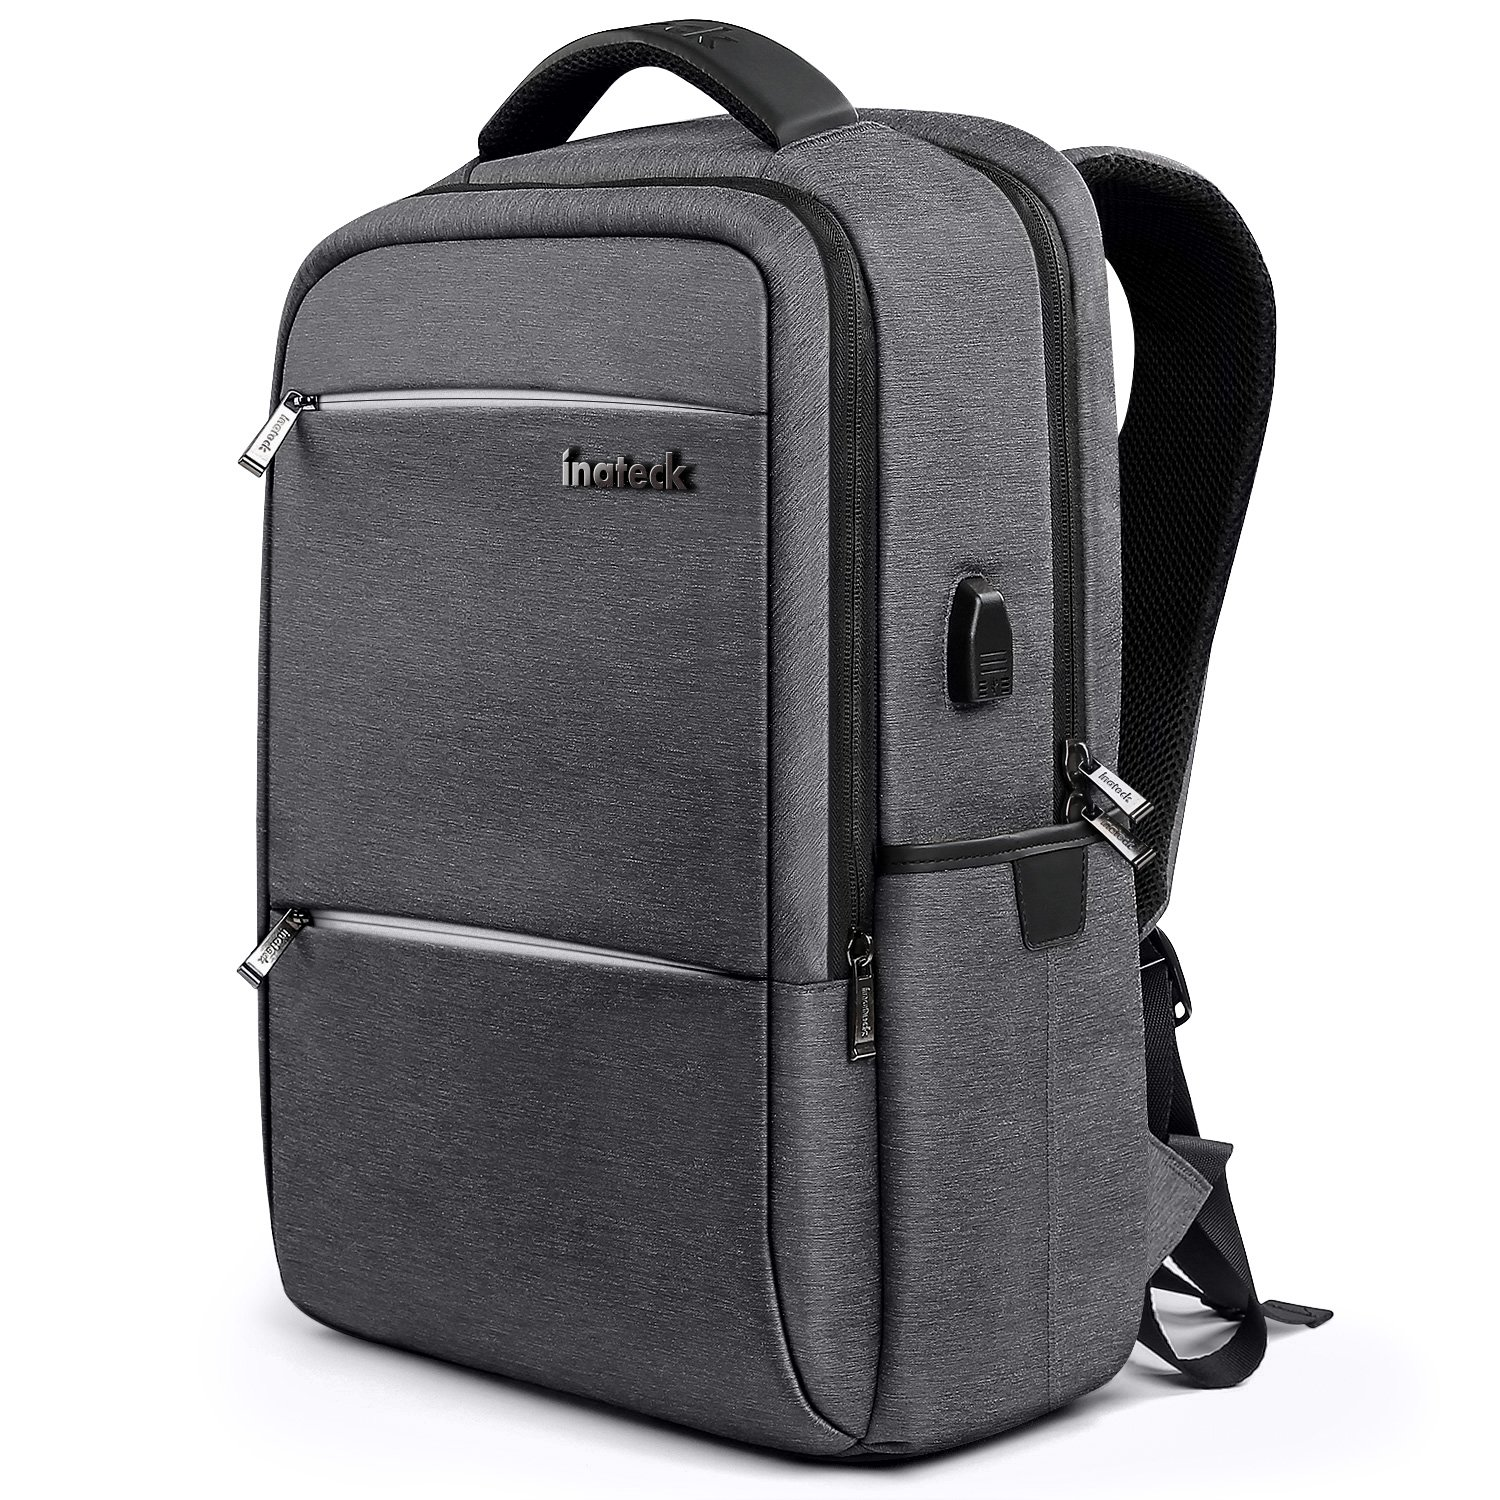 Inateck Laptop Backpack with USB Charging